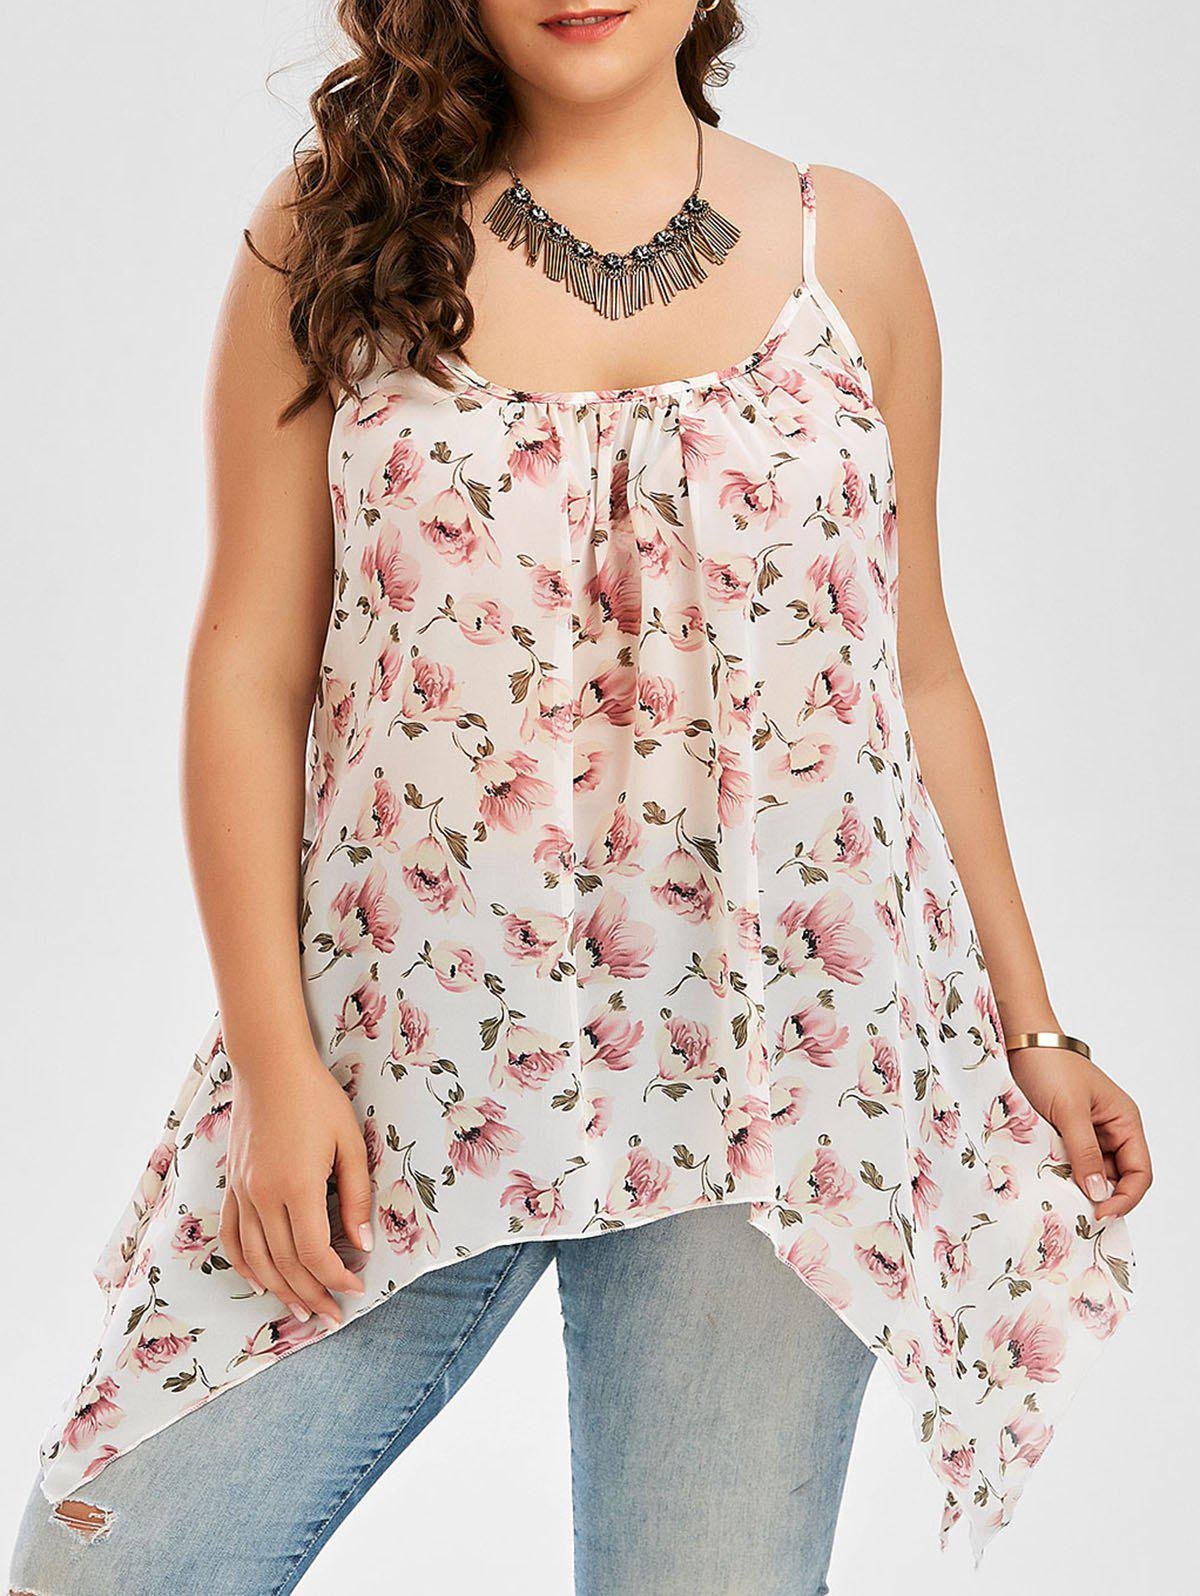 Plus Size Chiffon Floral Printed Cami Asymmetric  TopWOMEN<br><br>Size: 5XL; Color: WHITE; Material: Cotton Blends,Polyester; Fabric Type: Chiffon; Shirt Length: Regular; Sleeve Length: Sleeveless; Collar: Spaghetti Strap; Style: Fashion; Season: Spring,Summer; Embellishment: Backless; Pattern Type: Floral; Weight: 0.1500kg; Package Contents: 1 x Cami Top;